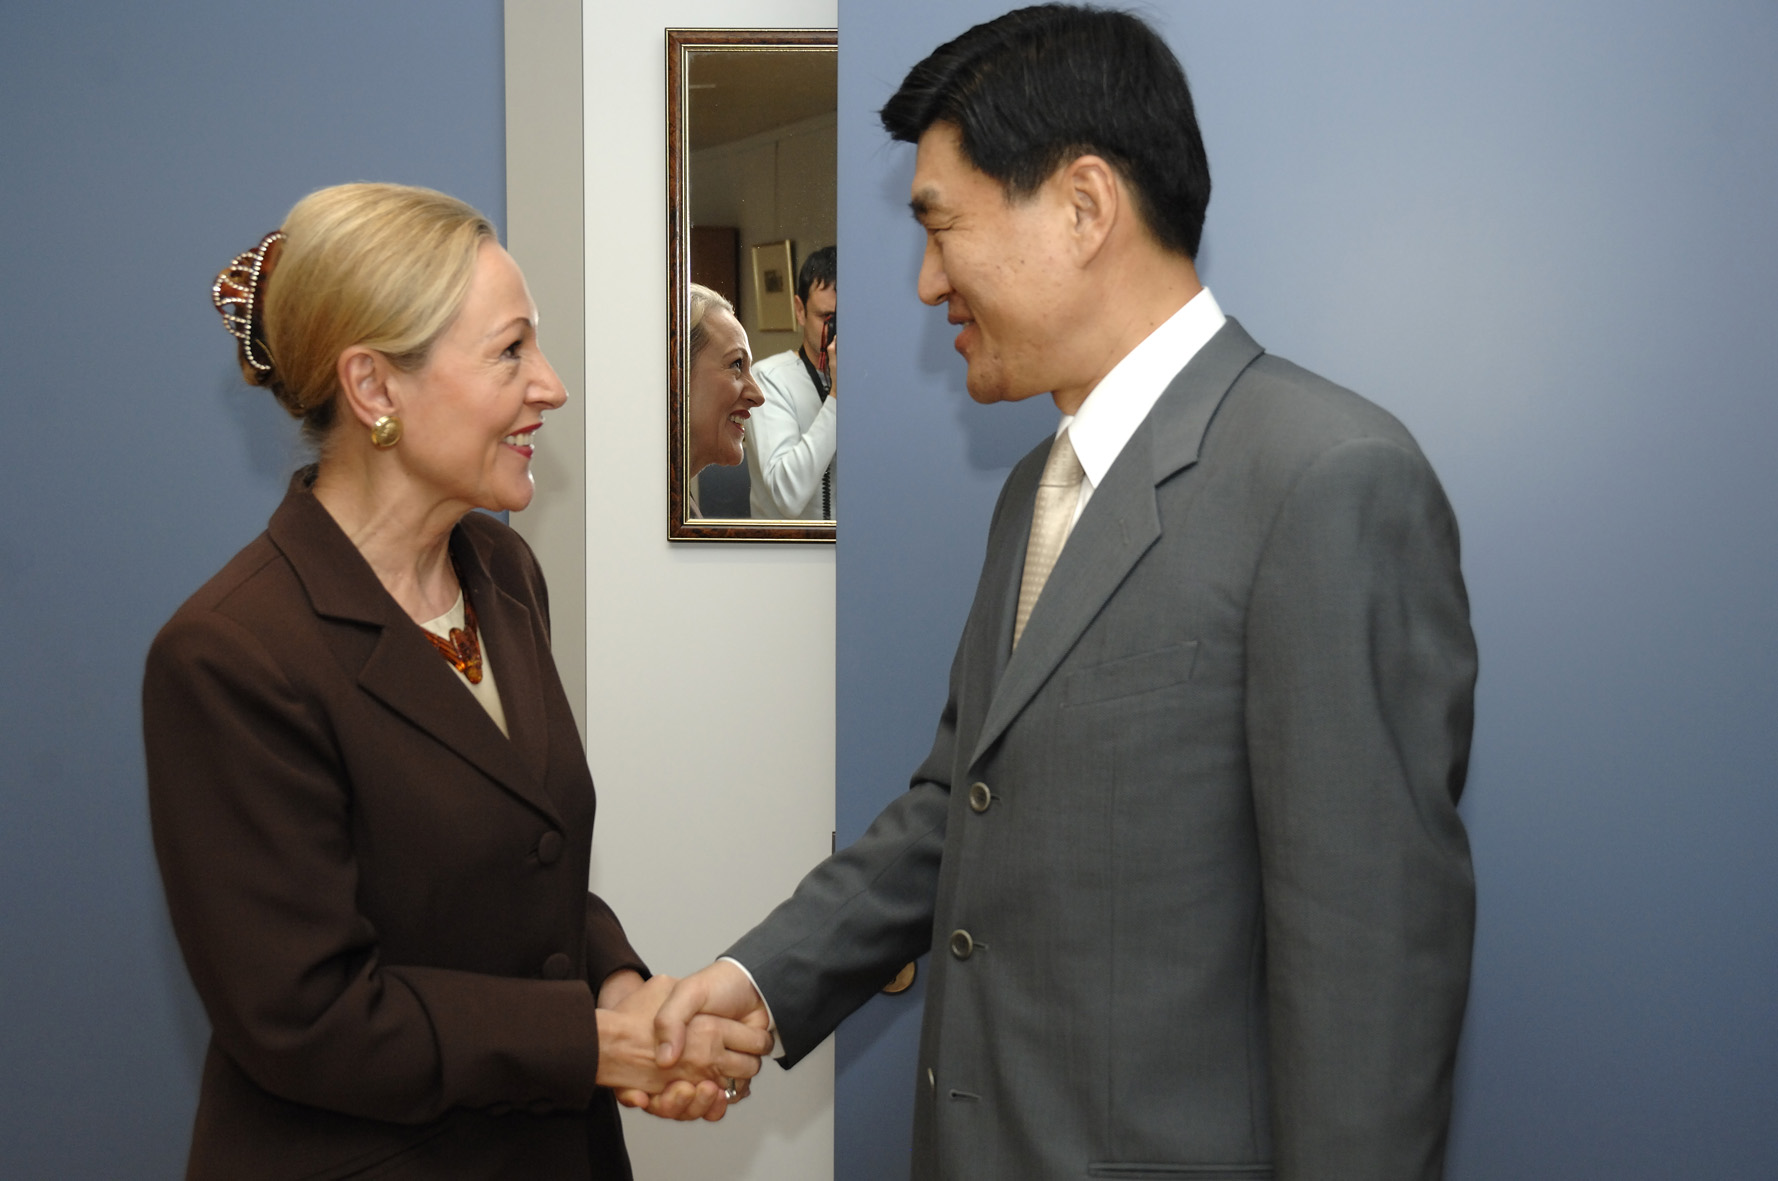 Visit by Shim Yoon-joe, Korean Deputy Minister for Foreign Affairs, to the EC